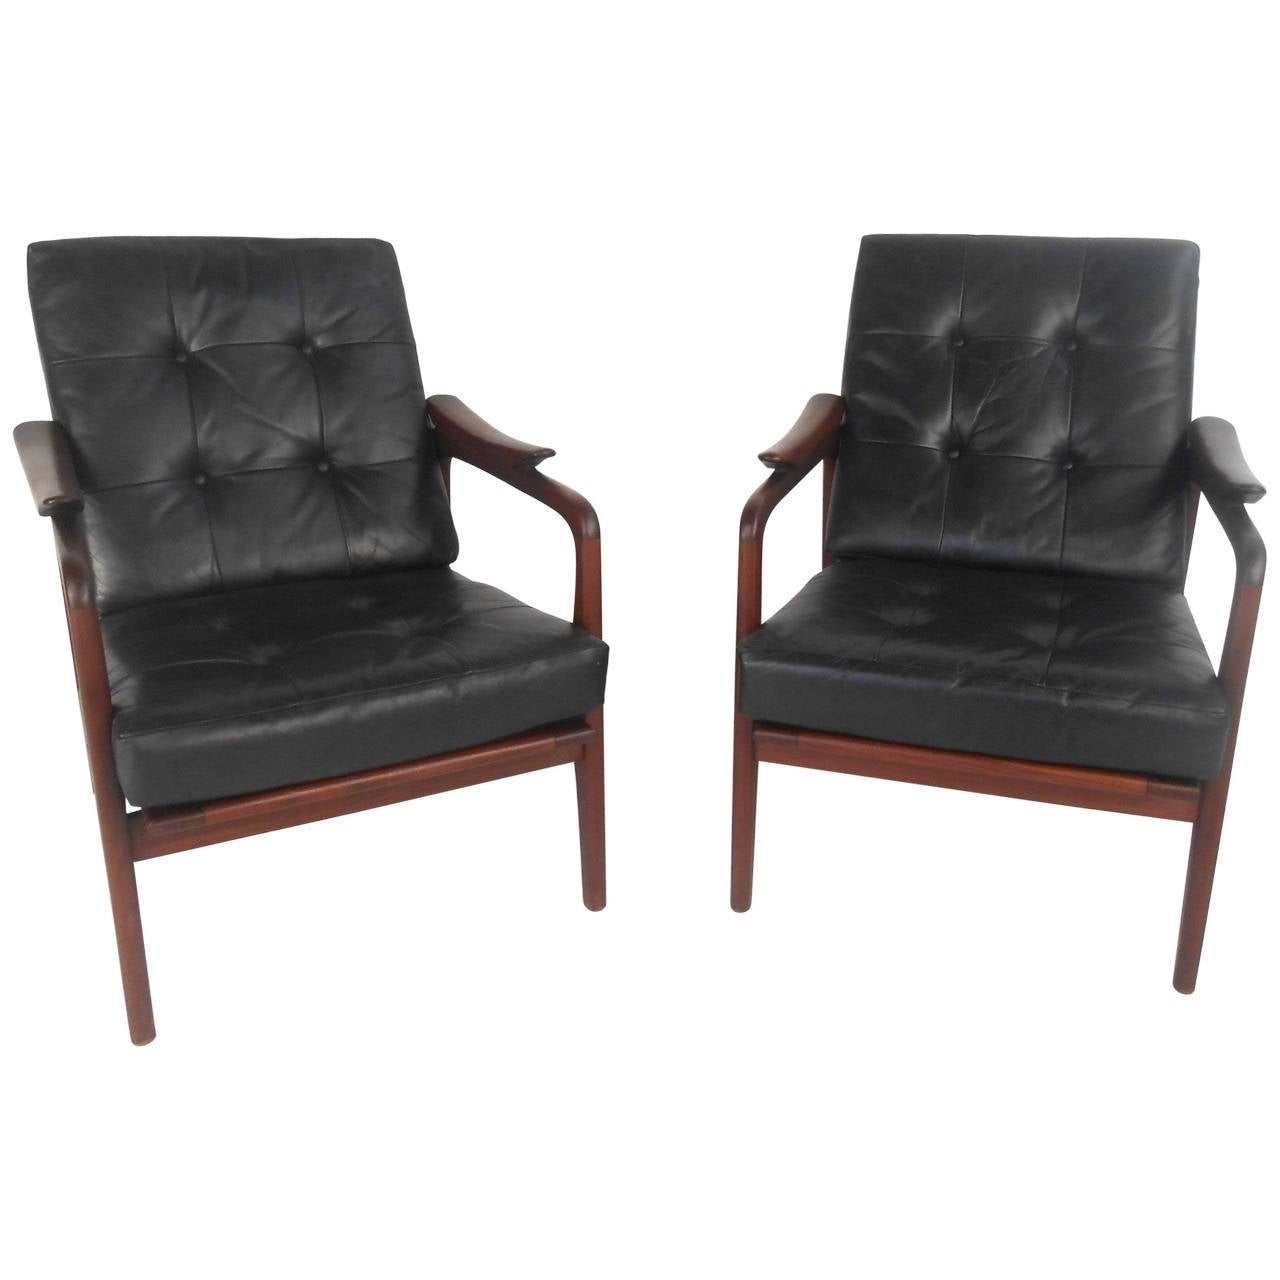 Pair beautiful mid century modern leather lounge chairs at for Modern leather club chair